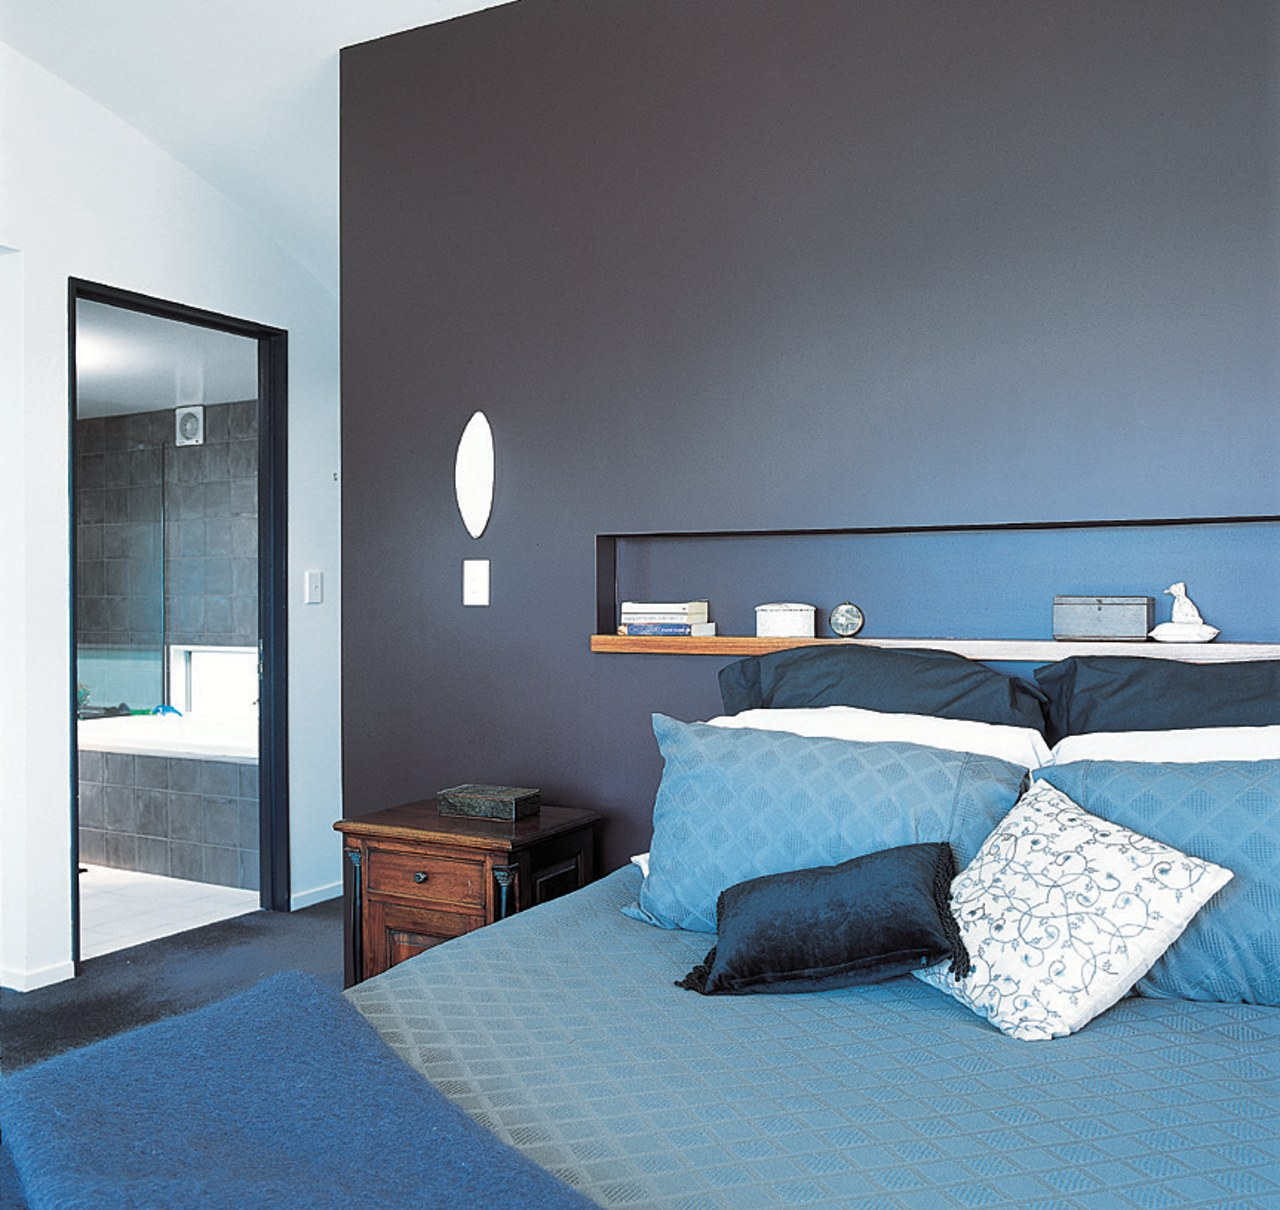 The view of a colourful bedroom architecture, bed, bed frame, bedroom, blue, daylighting, home, house, interior design, room, suite, wall, window, teal